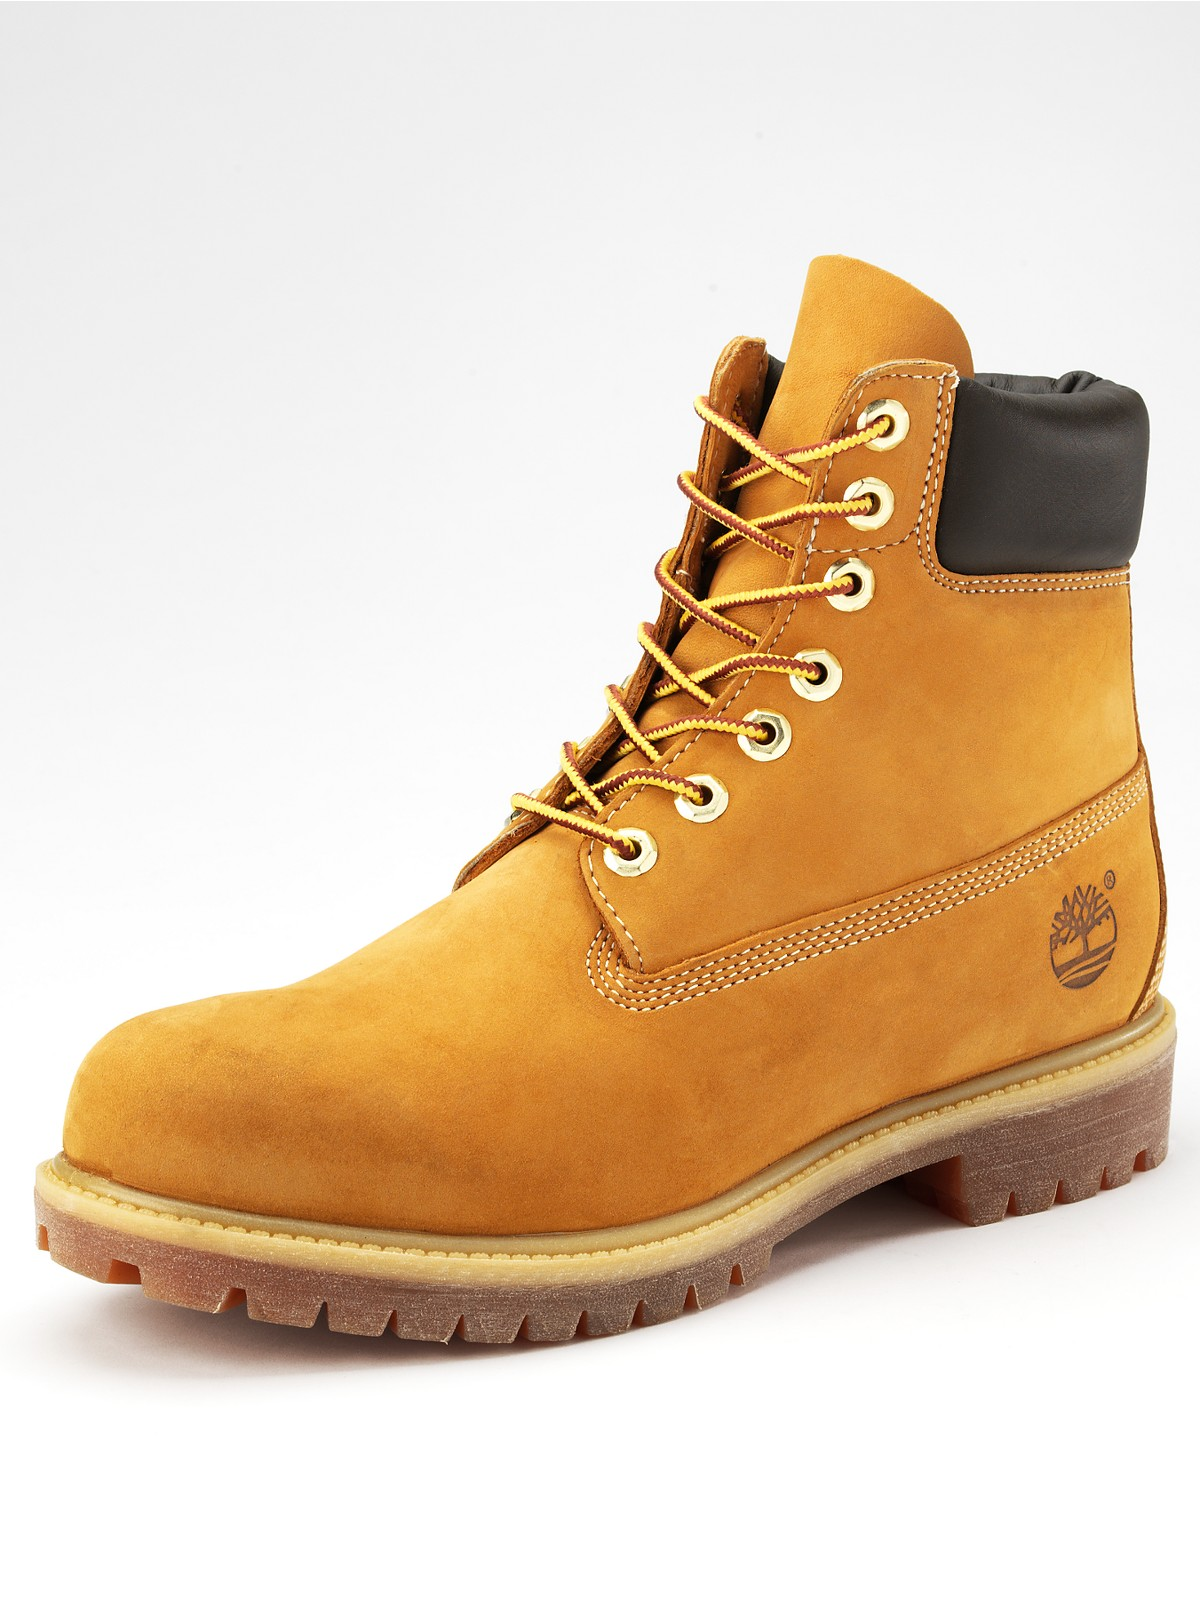 Timberland Boots For Men 2012 Timberland Mens 6 Inch...